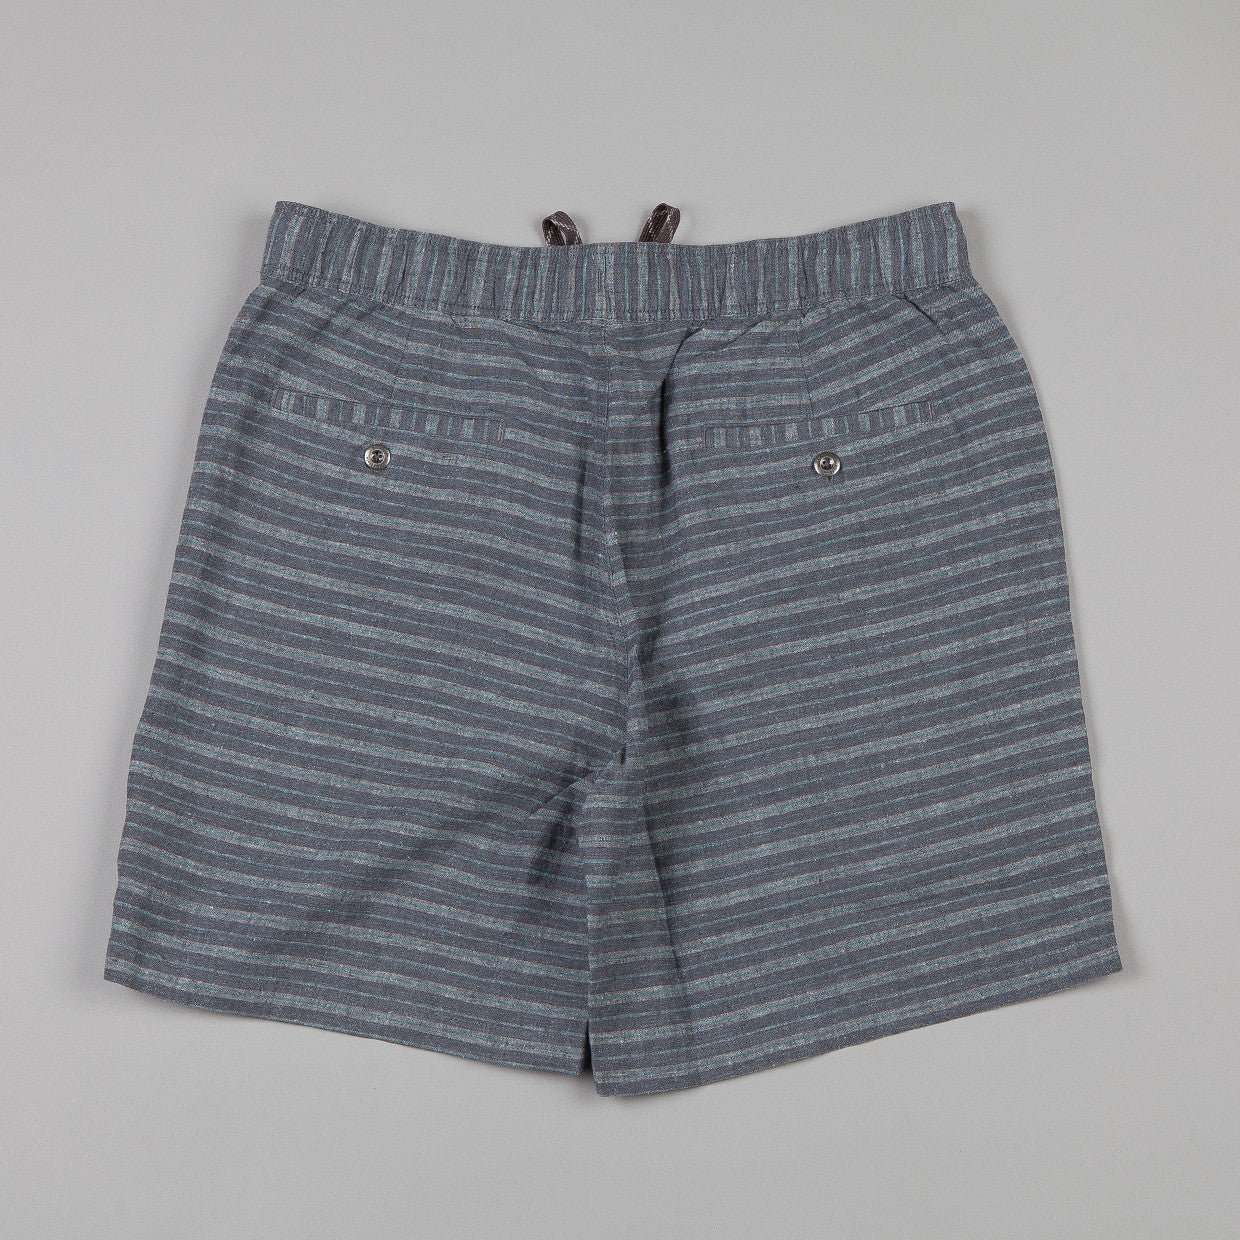 "Patagonia Baggies™ Naturals 7"" Shorts Arroyo Seco : Forge Grey"